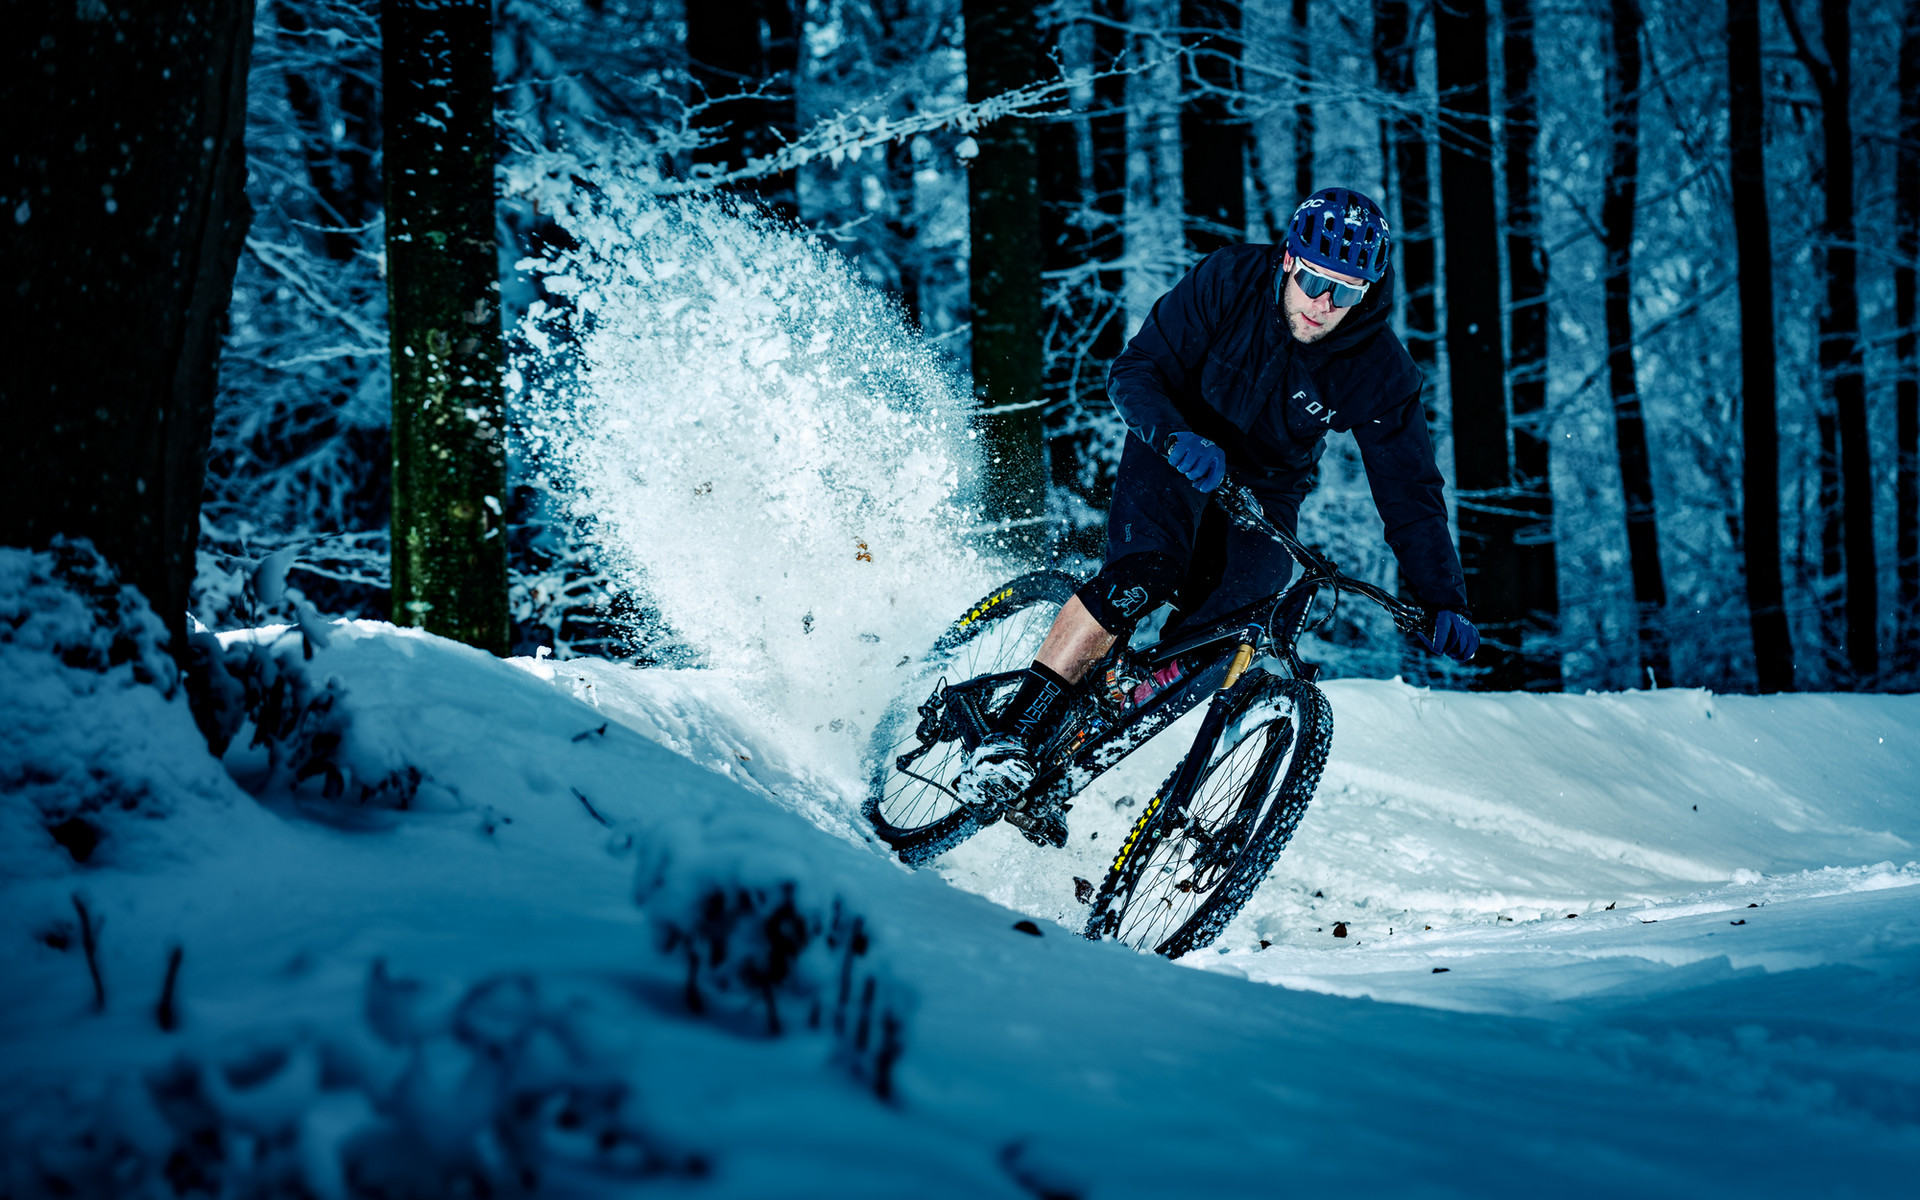 Mountainbike_Snow_02.jpg